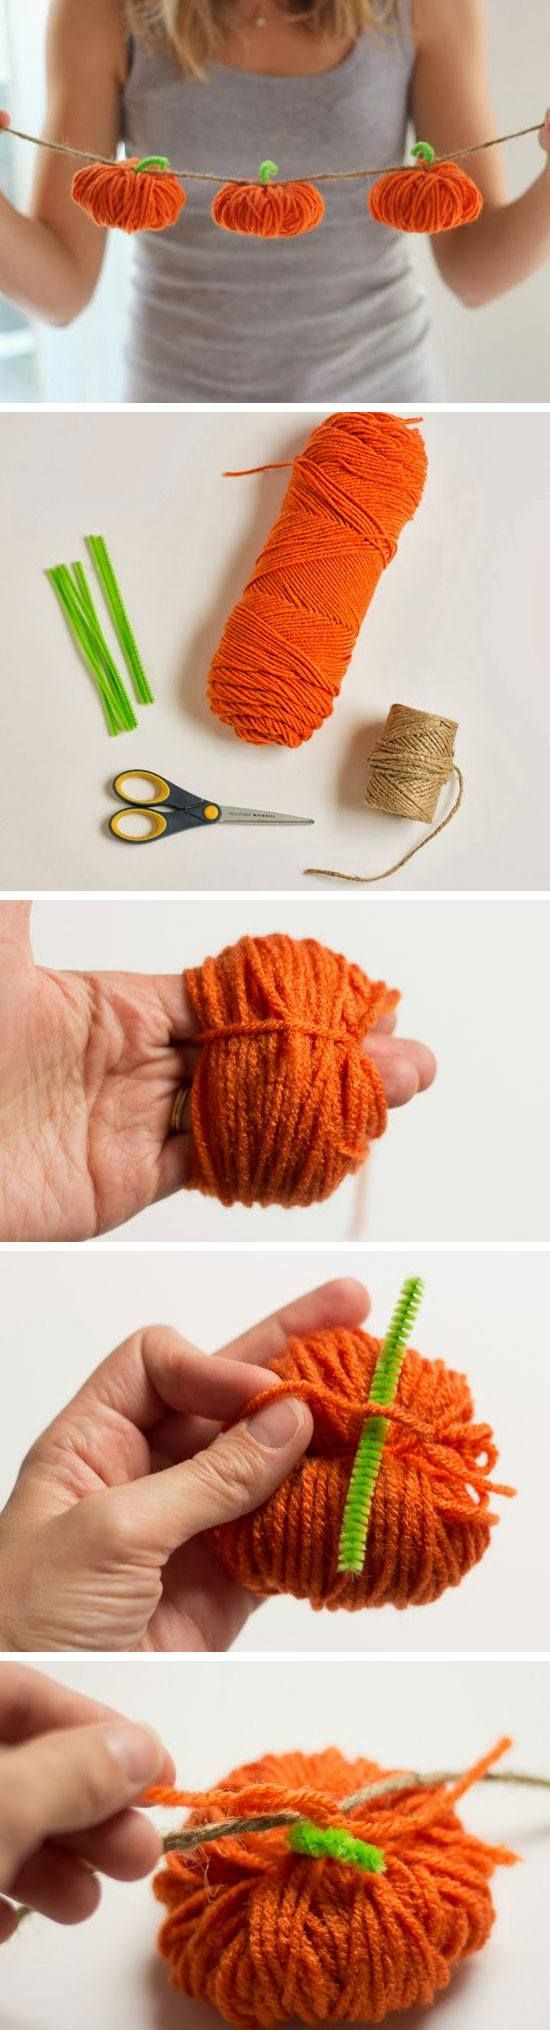 Make a Simple Yarn Pumpkin Garland